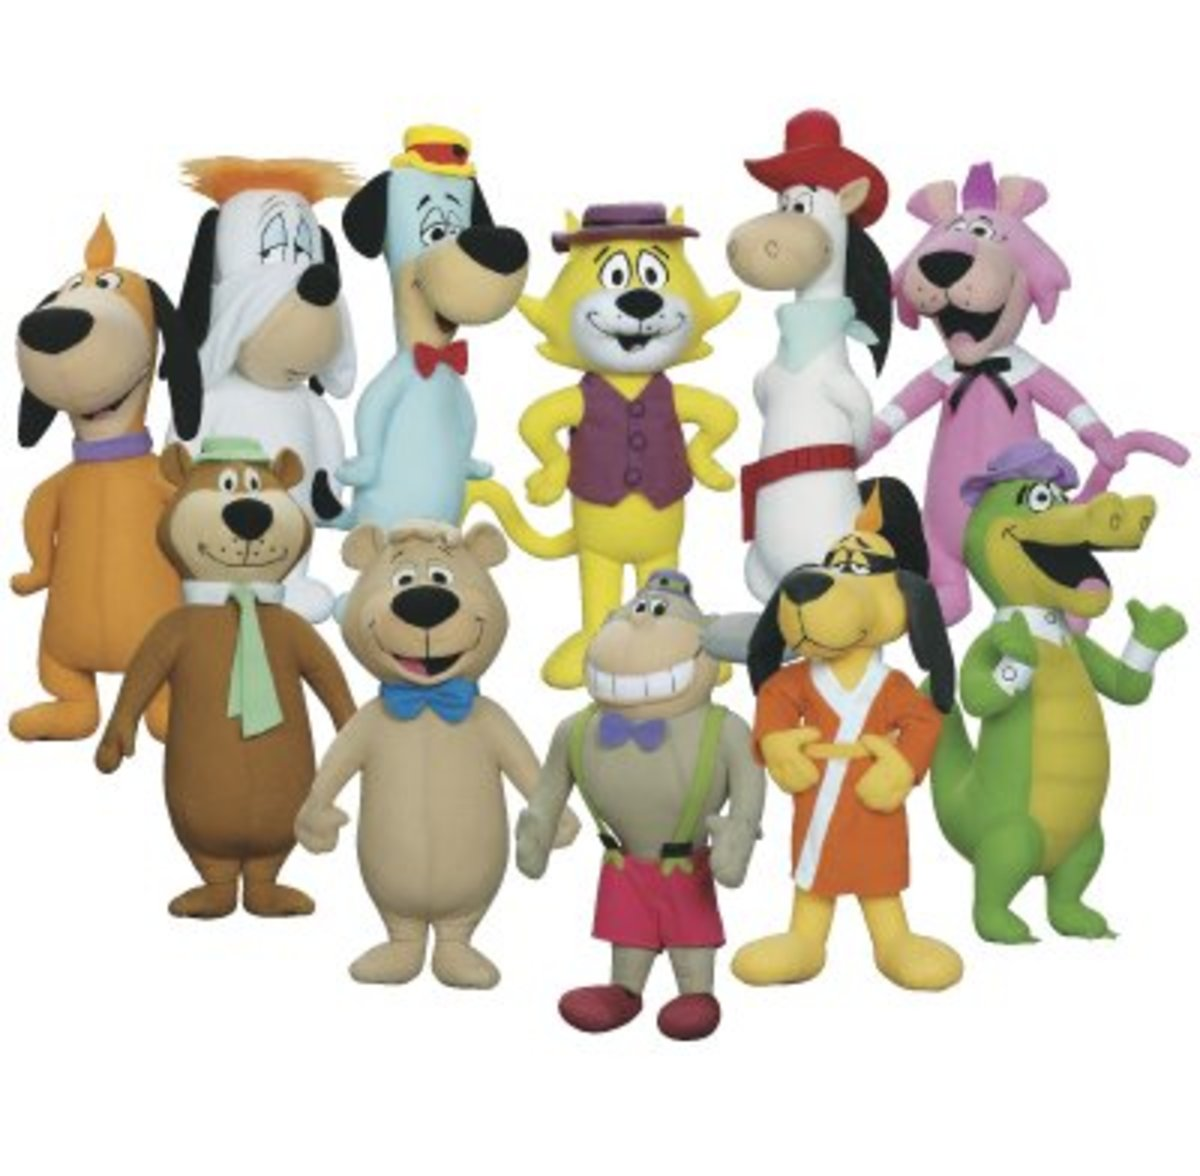 Top Ten TV Cartoon Characters From The S And S ReelRundown - Depressing look happened favourite 90s cartoon characters